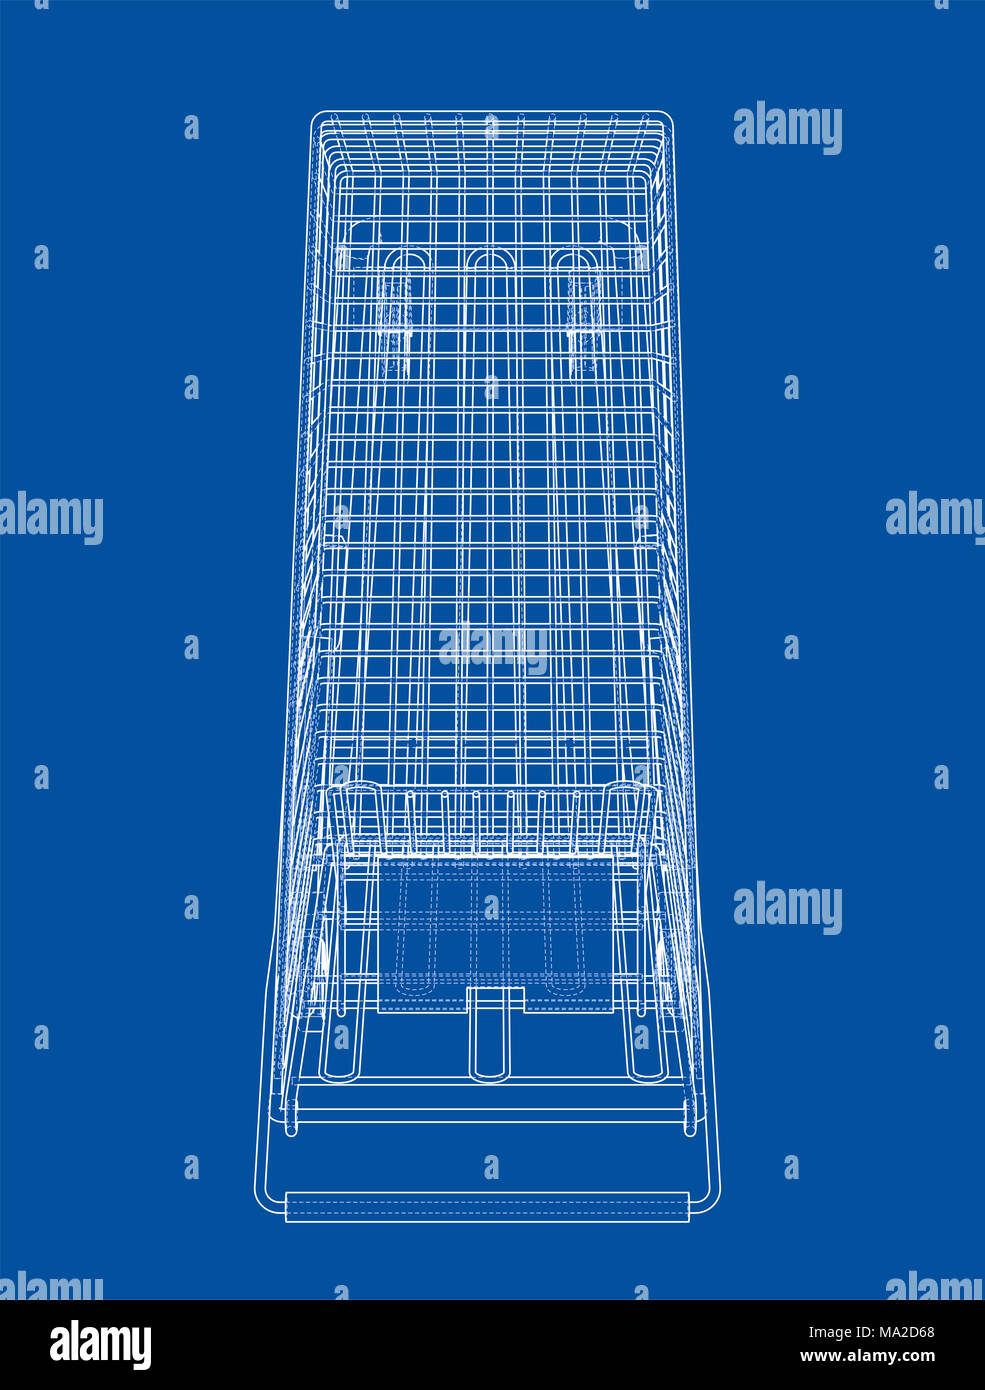 Sketch shopping trolley. 3d illustration. Wire-frame style - Stock Image